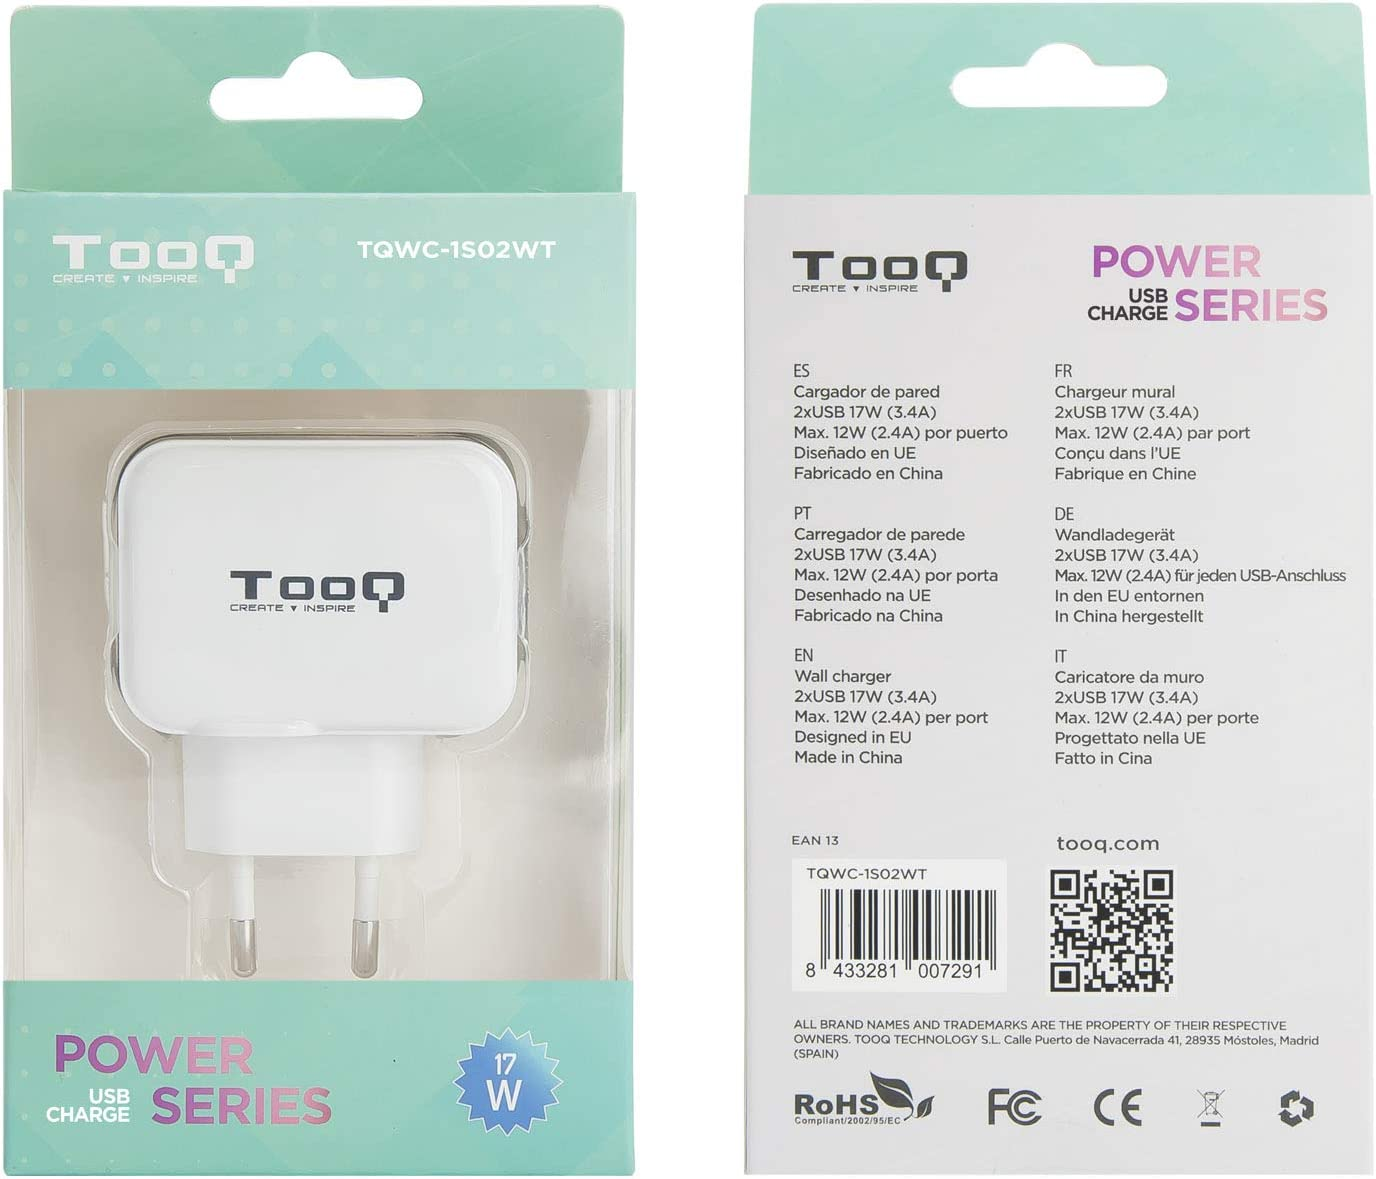 Tooq Tqwc 1s02wt Charger With 2x Usb With Airpower Computers Accessories